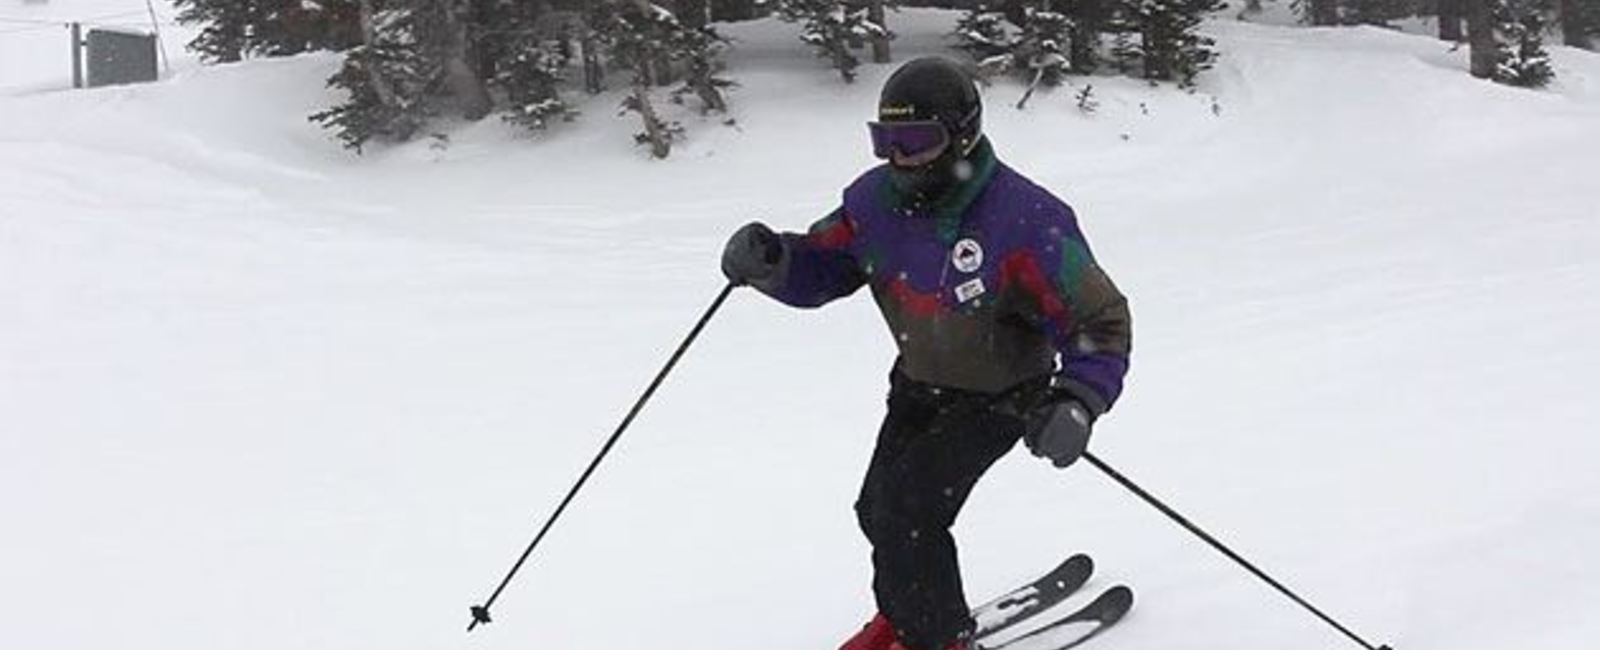 Words of Wisdom from 96 Year Old Skier, George Jedenoff